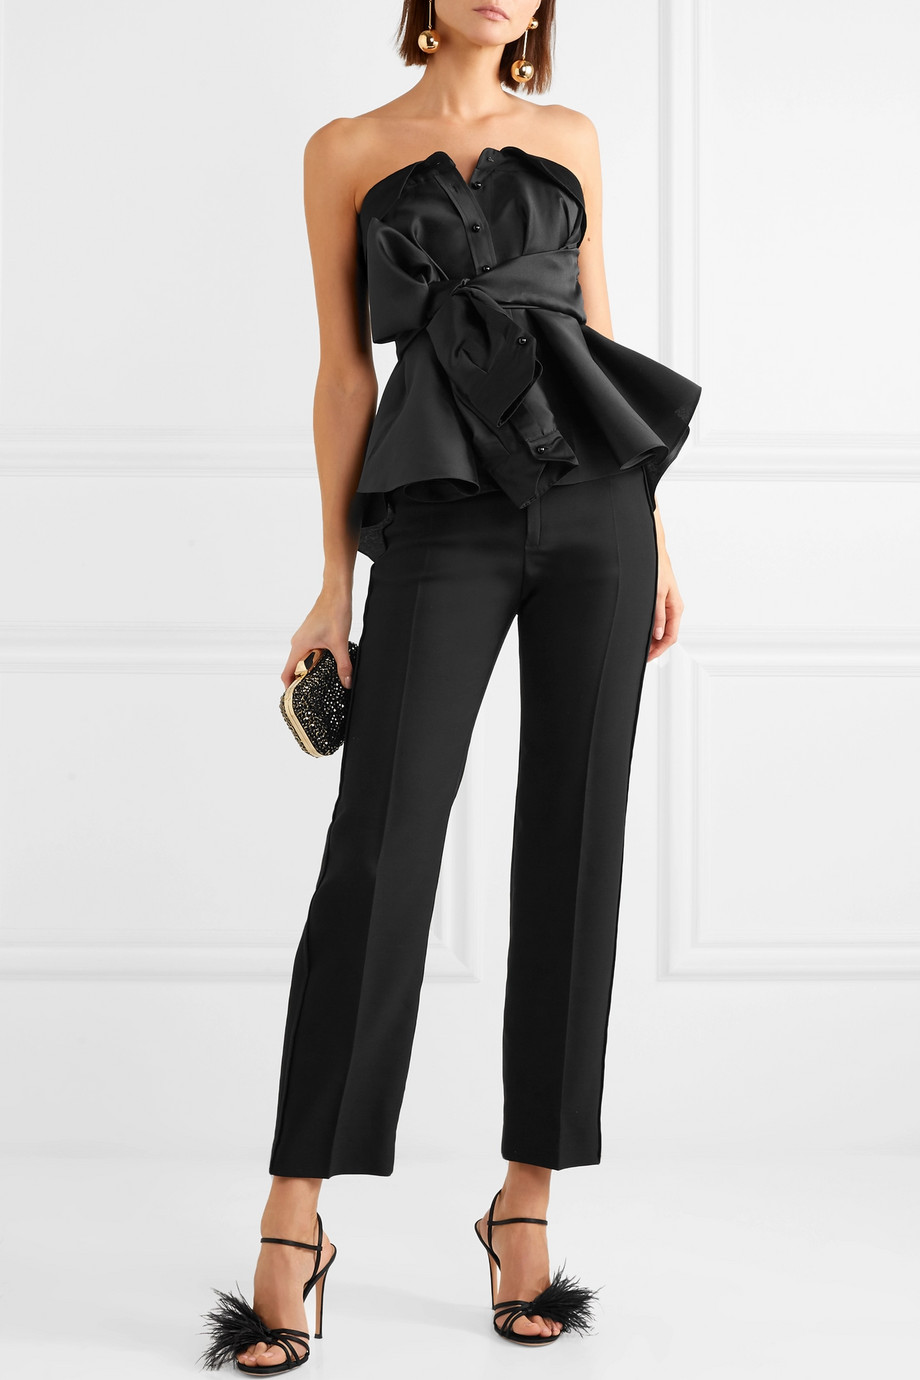 Satin blouse Alexis Mabille buy Satin blouse Alexis Mabille internet shop